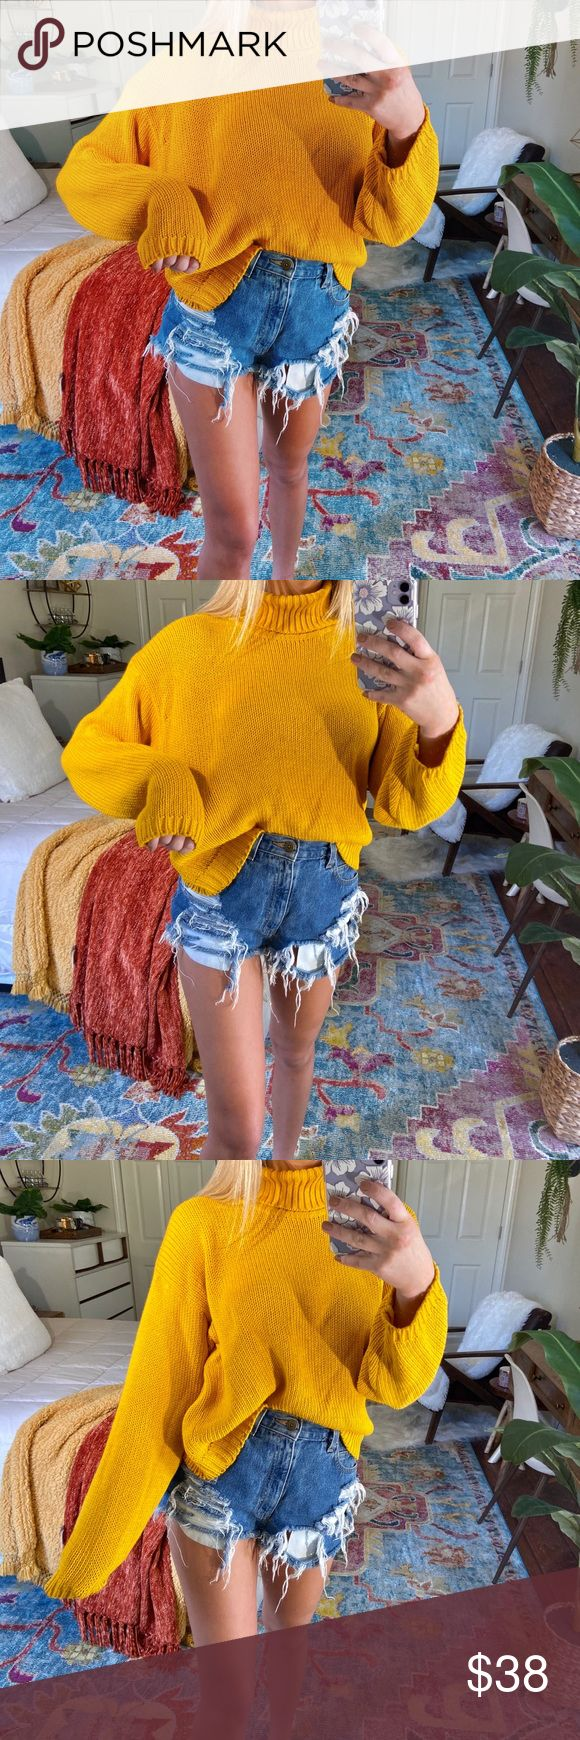 laynie // mustard turtleneck knit 🍯 descriptions coming soon! ask me any questions in the mean time ✨ ➳ tags • boho, beachy, trendy, dainty, ...